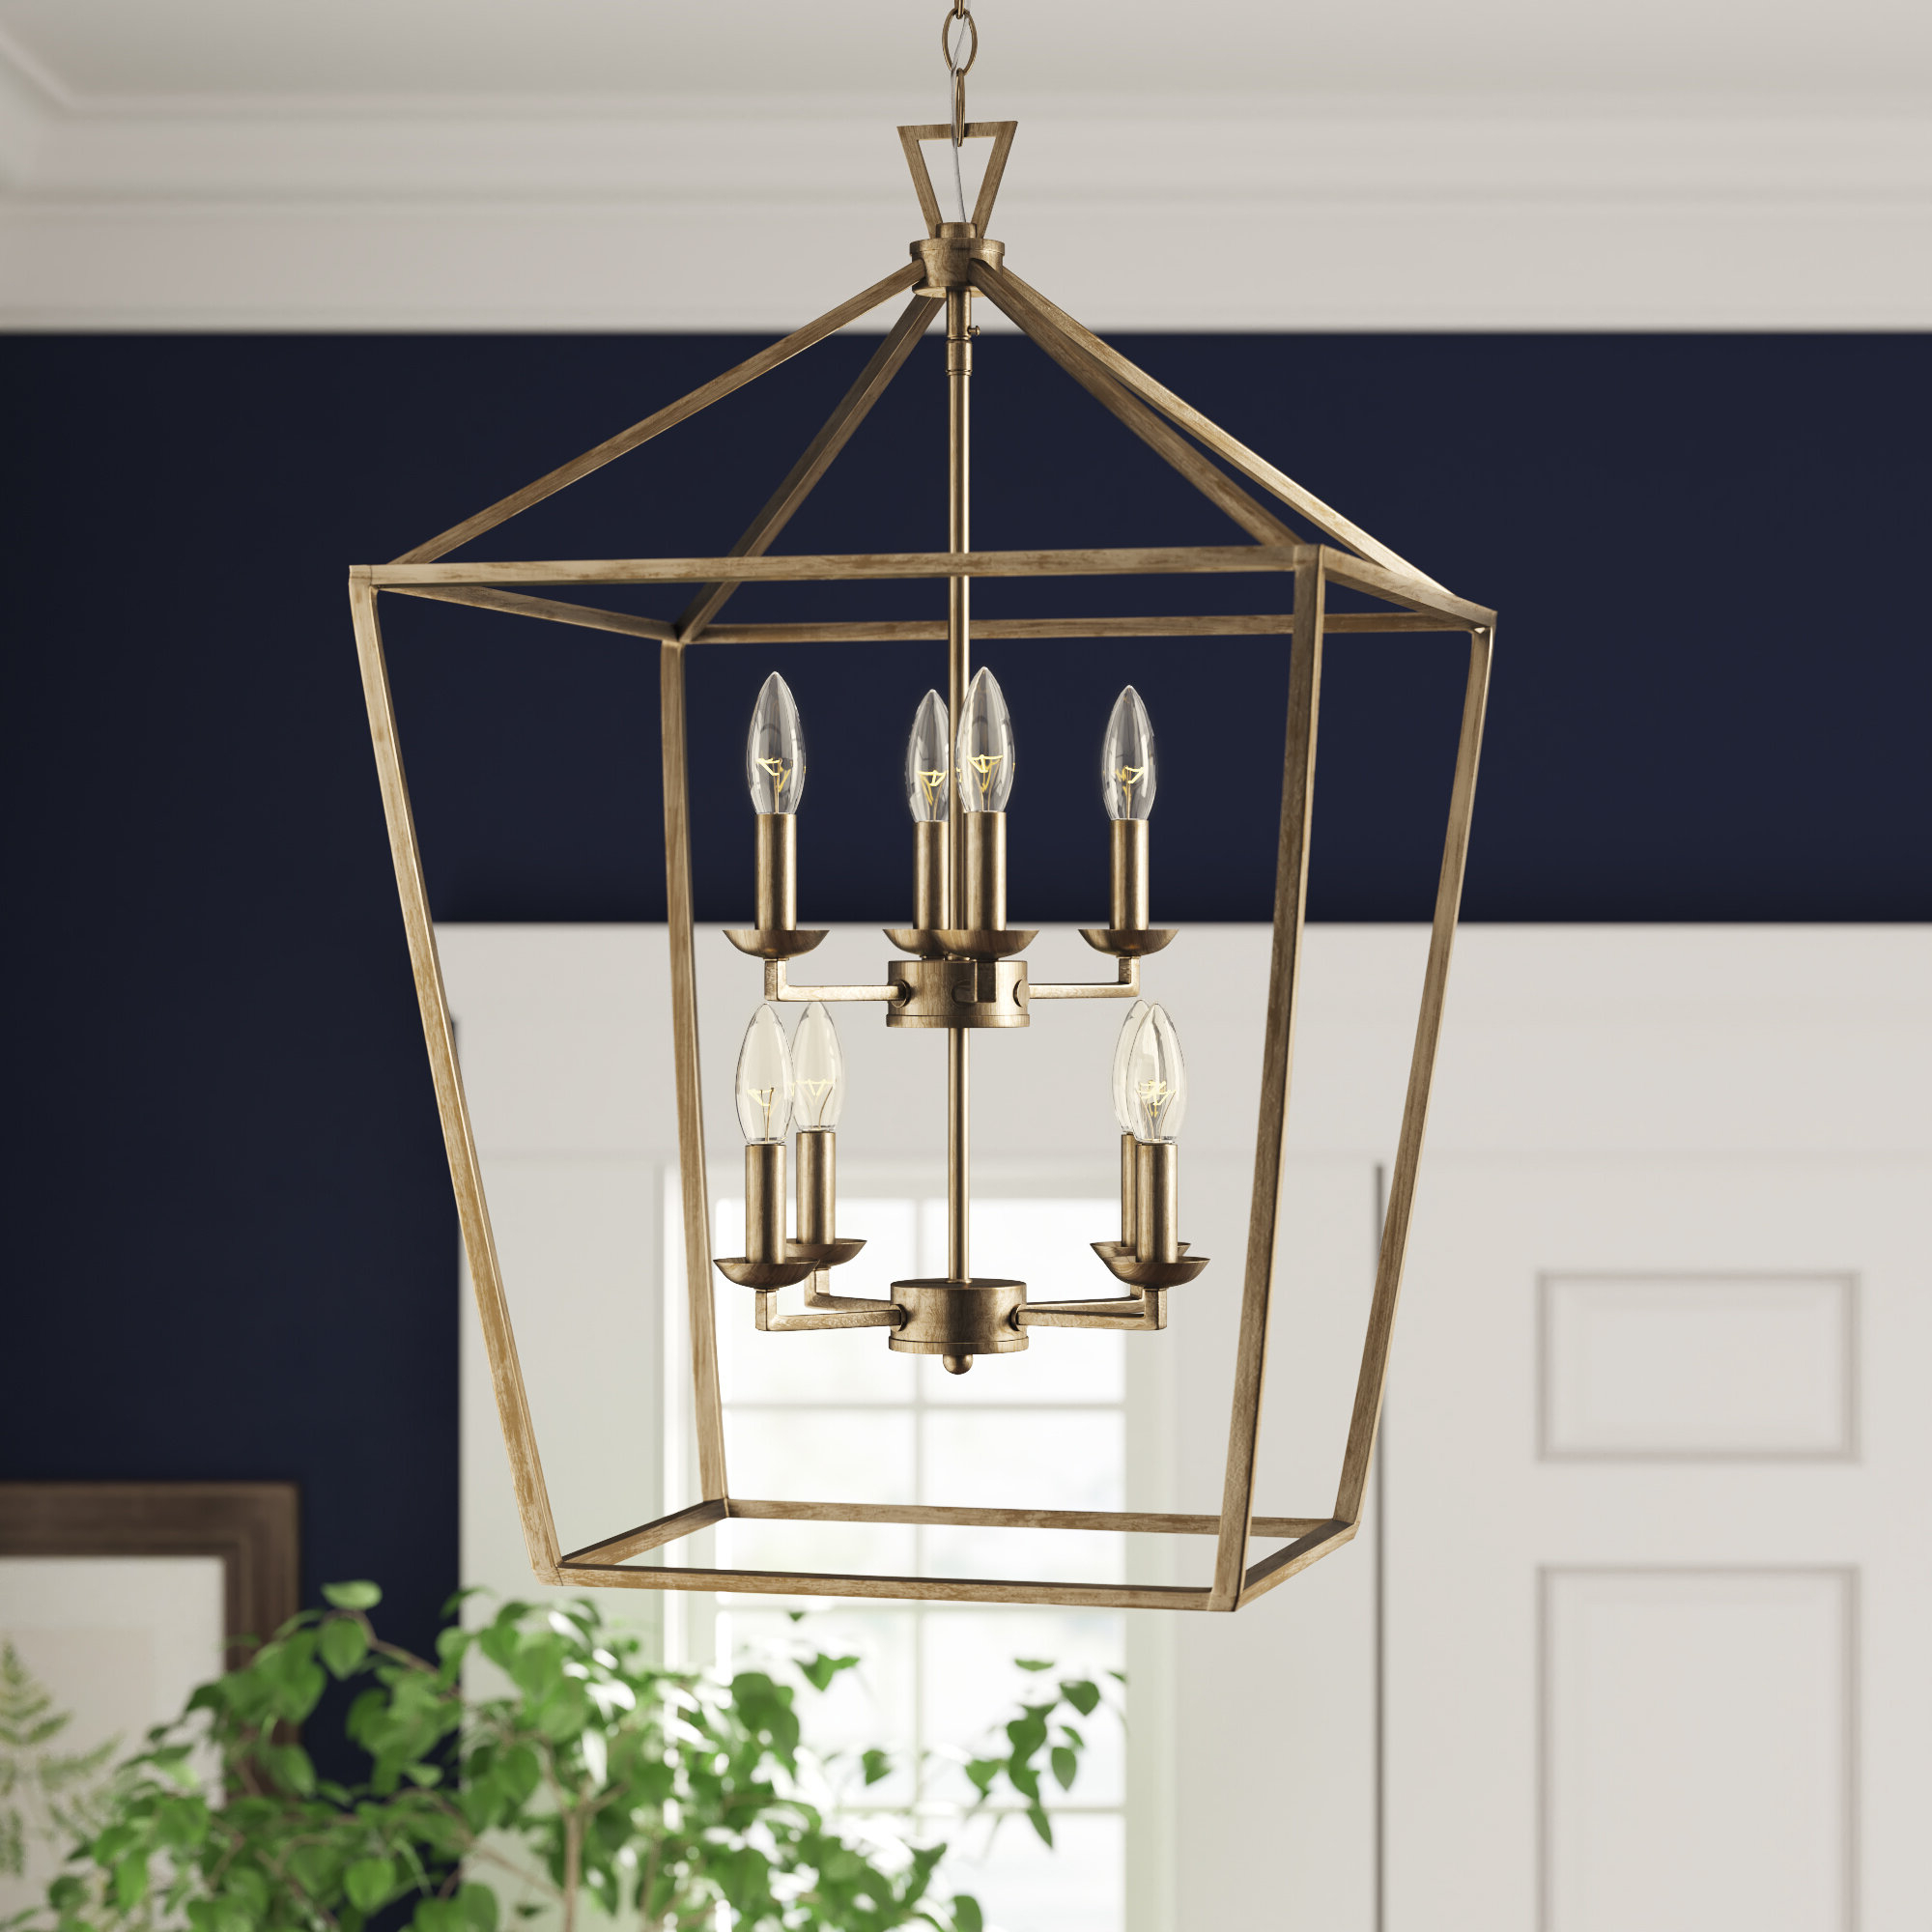 Birch Lane Intended For Famous Leiters 3 Light Lantern Geometric Pendants (View 18 of 25)